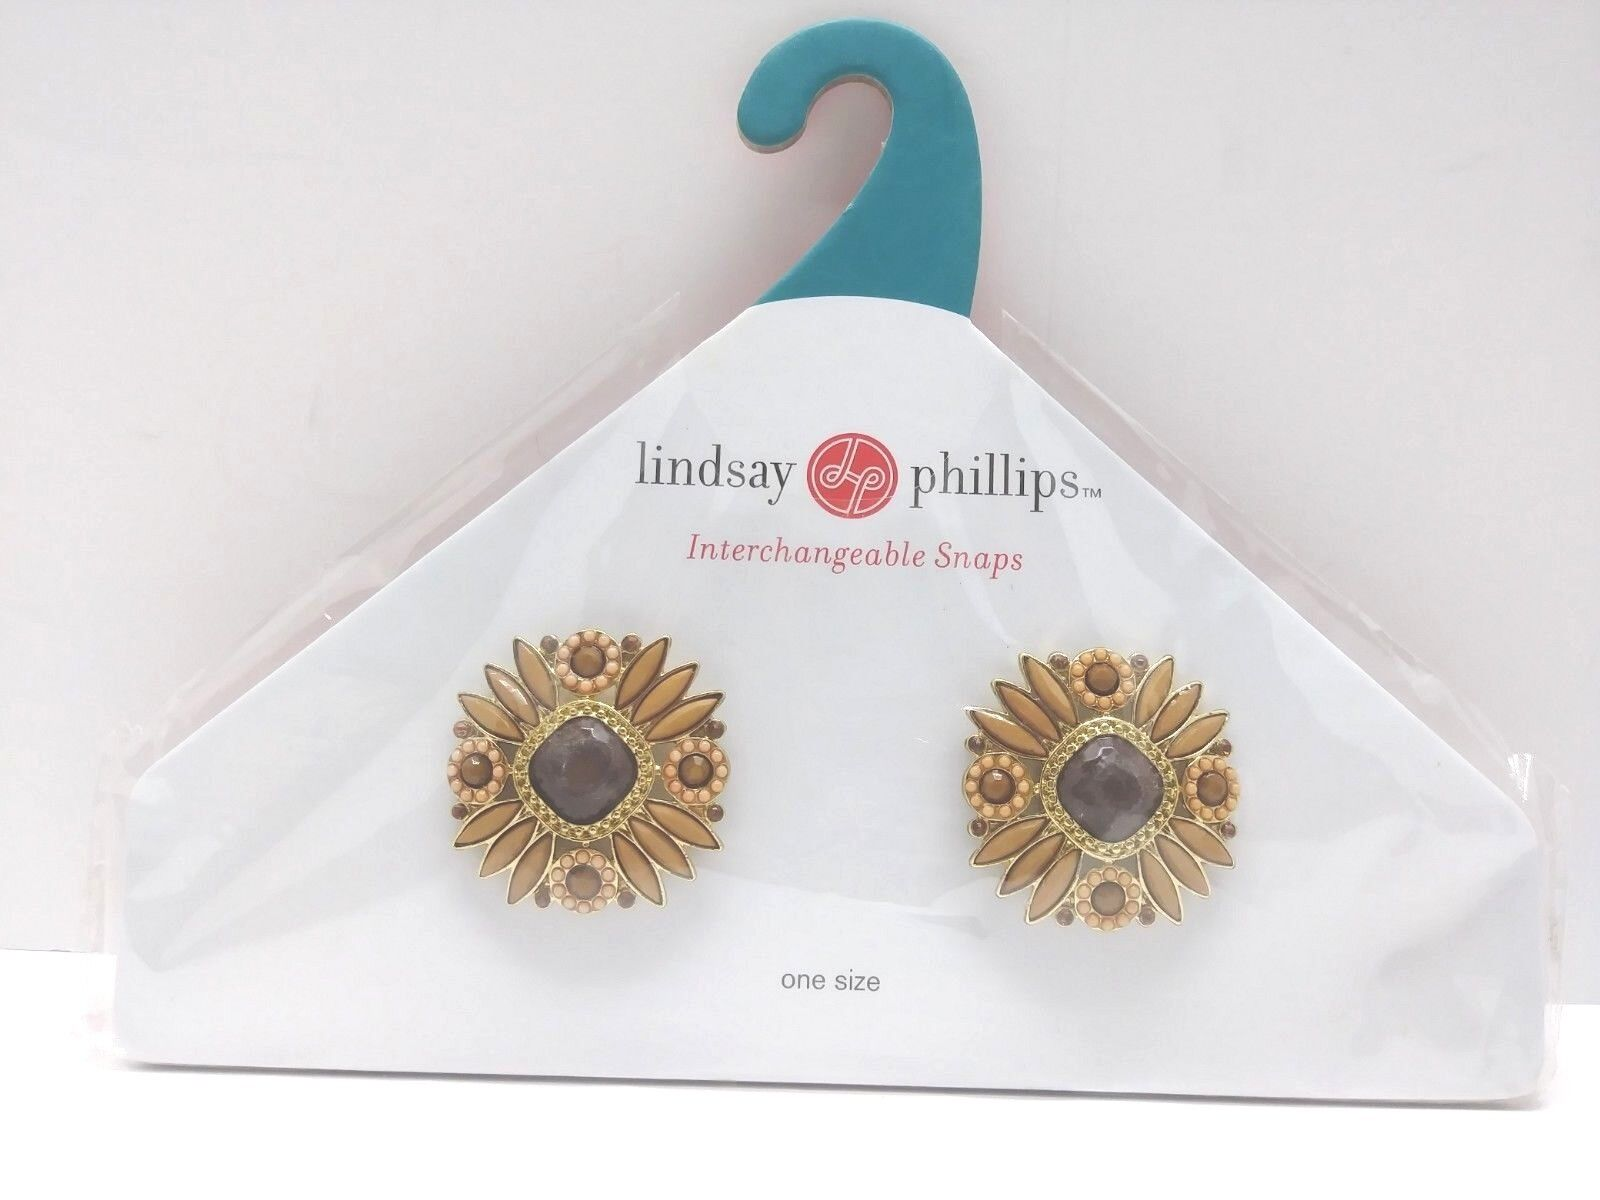 Lindsay Phillips Interchangeable Snaps Shoe Charms-LOT OF 2